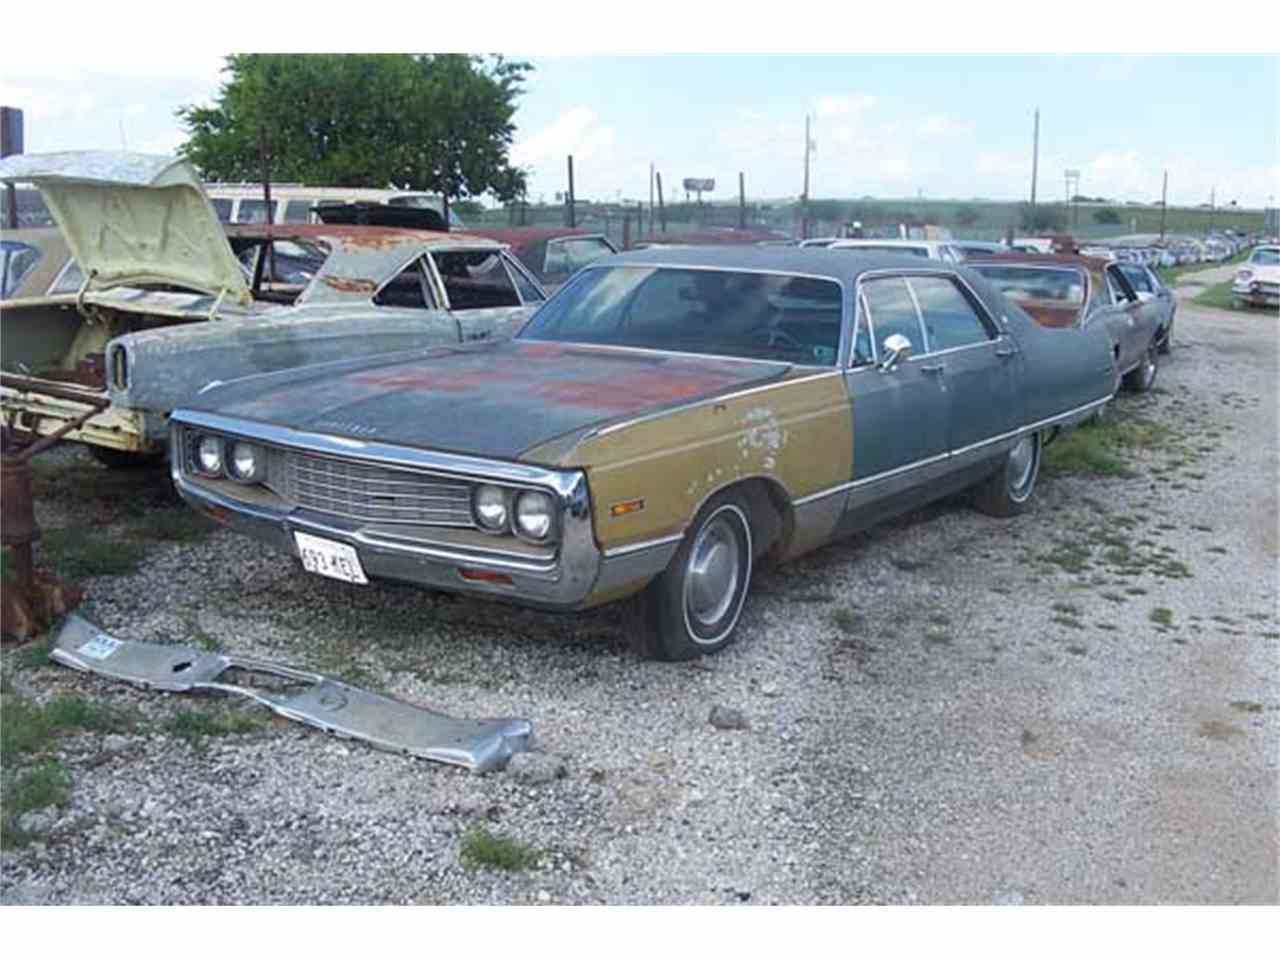 1970 chrysler new yorker 4 door images galleries with a bite. Black Bedroom Furniture Sets. Home Design Ideas